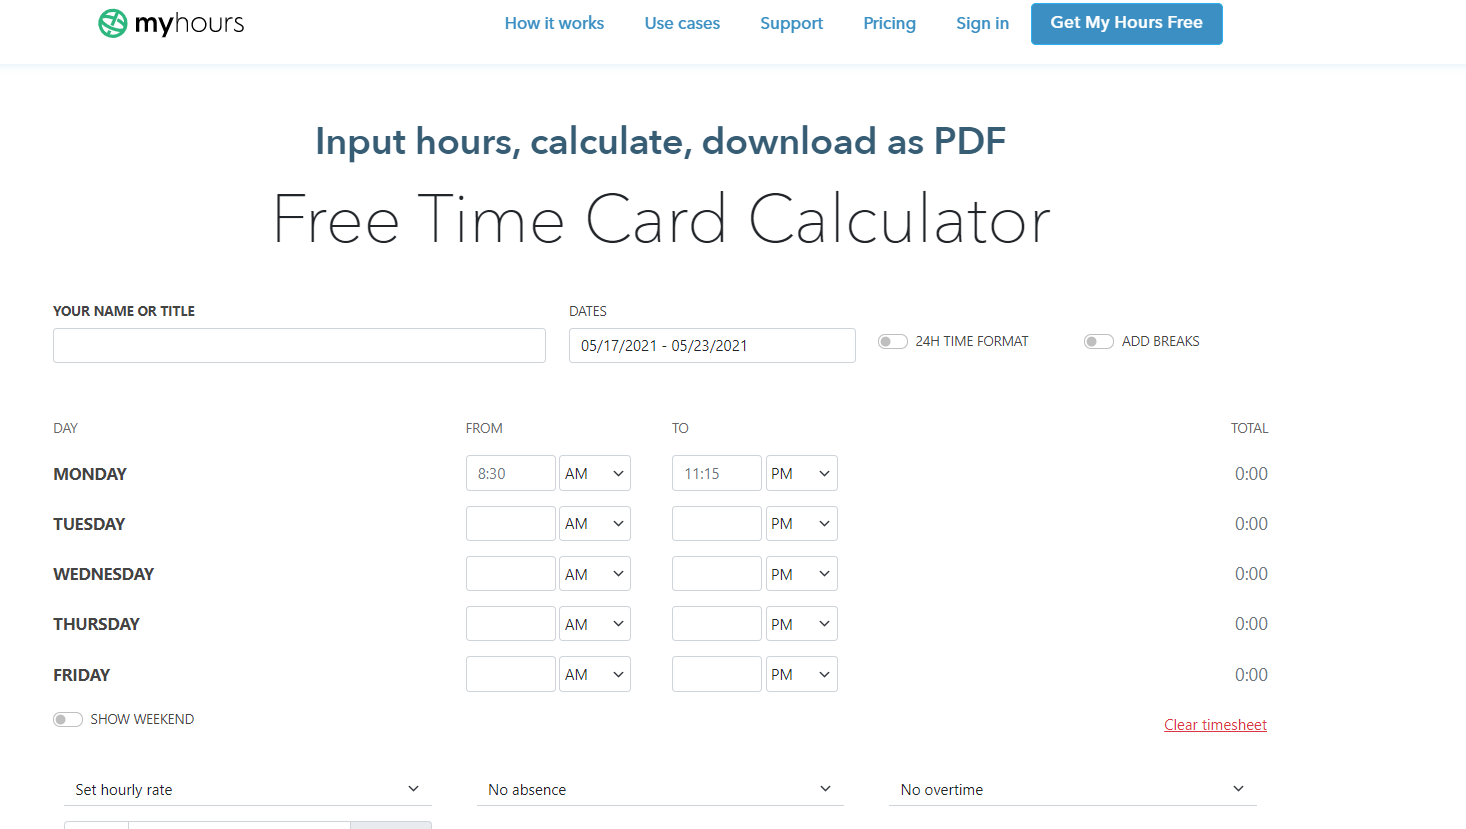 myhours time card calculator